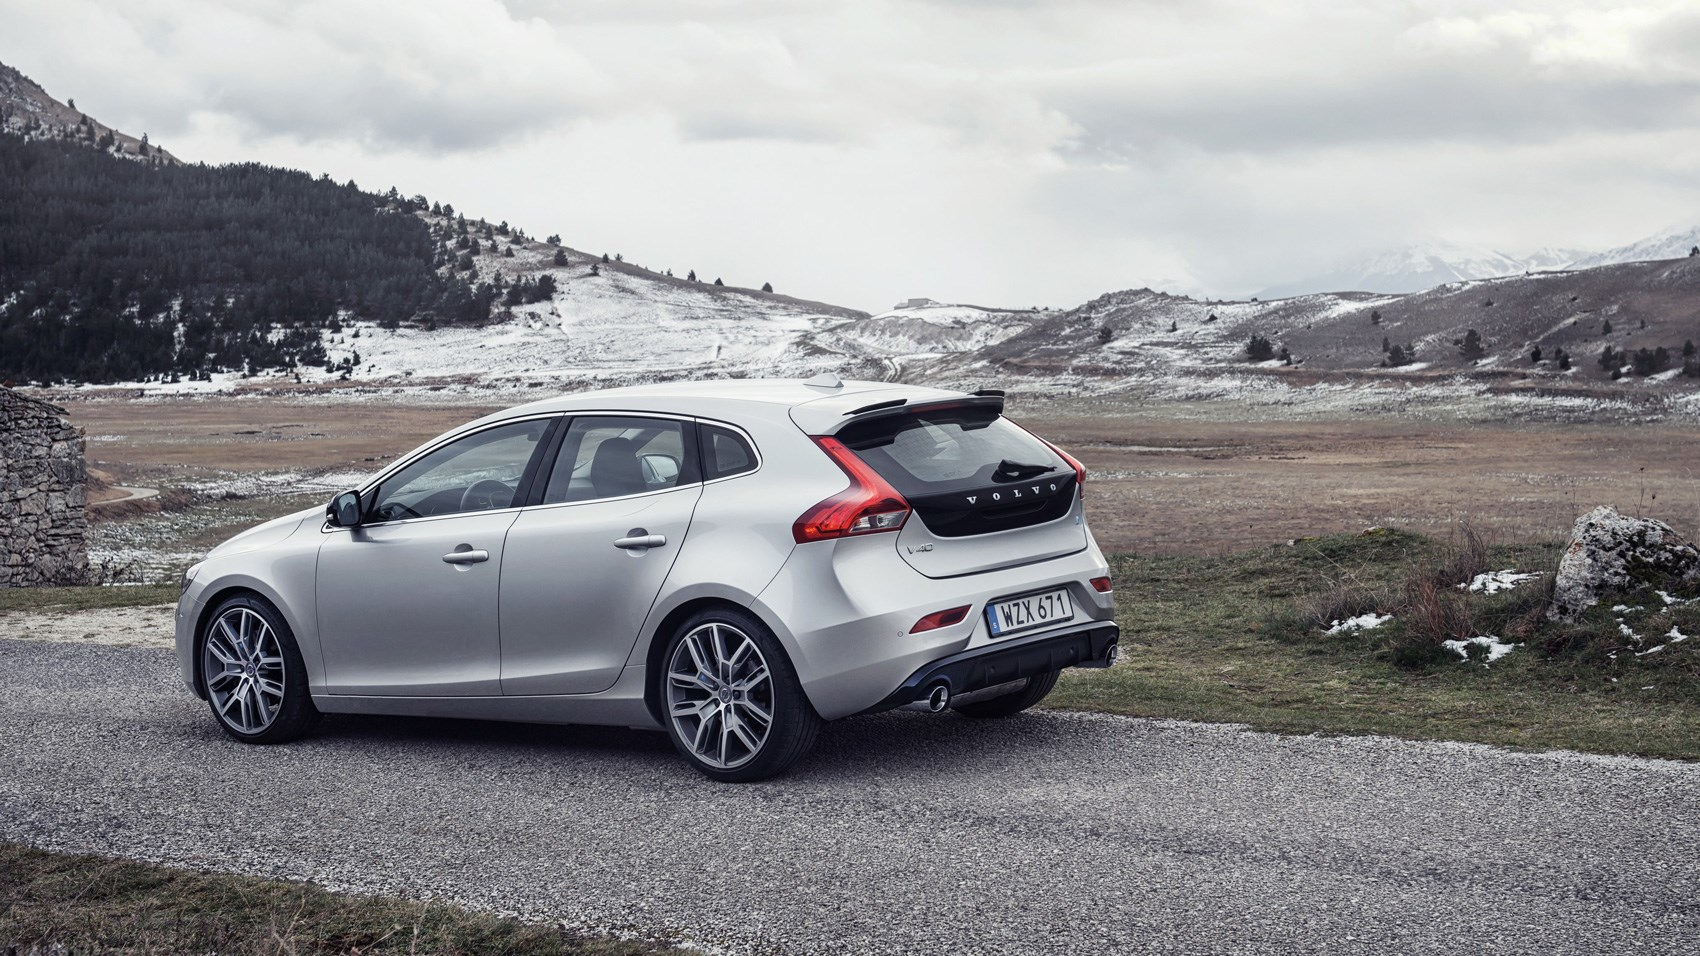 volvo v40 t5 r design pro polestar 2017 review car. Black Bedroom Furniture Sets. Home Design Ideas